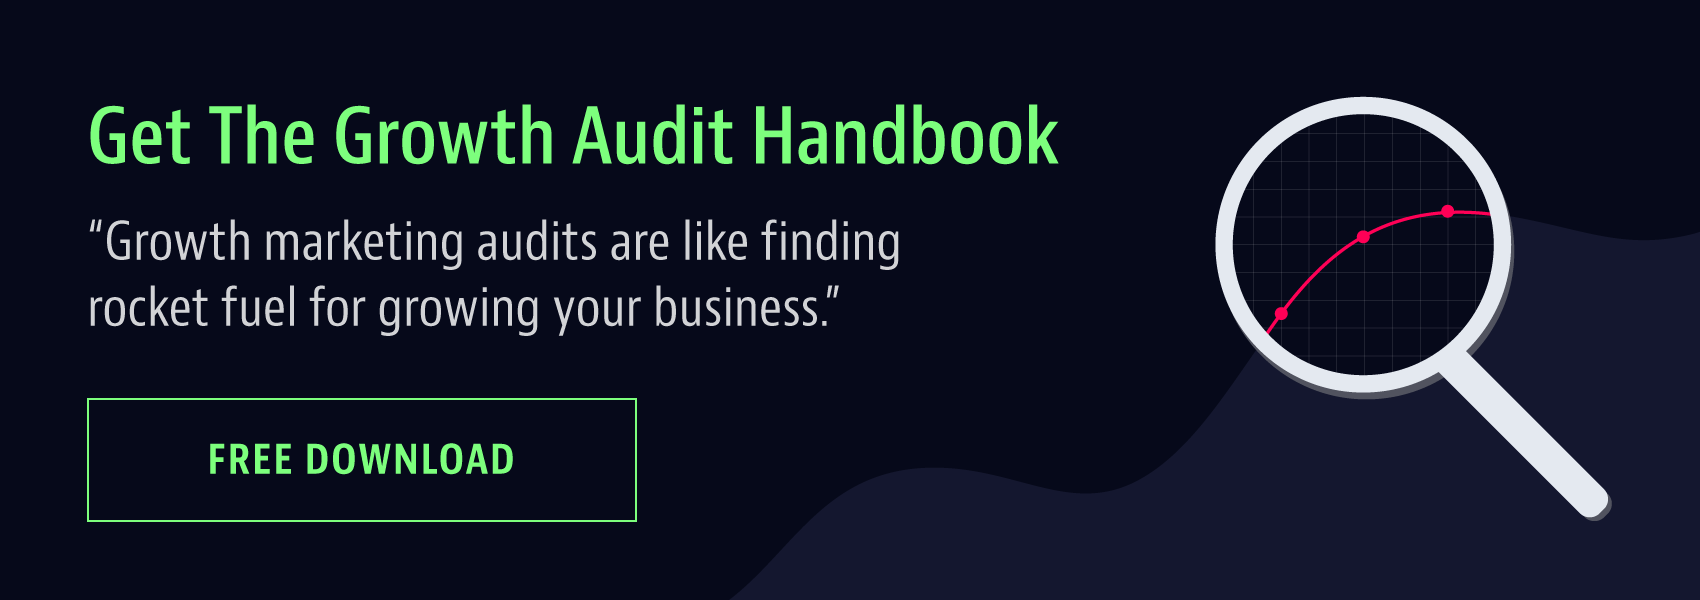 Get A Free Growth Audit